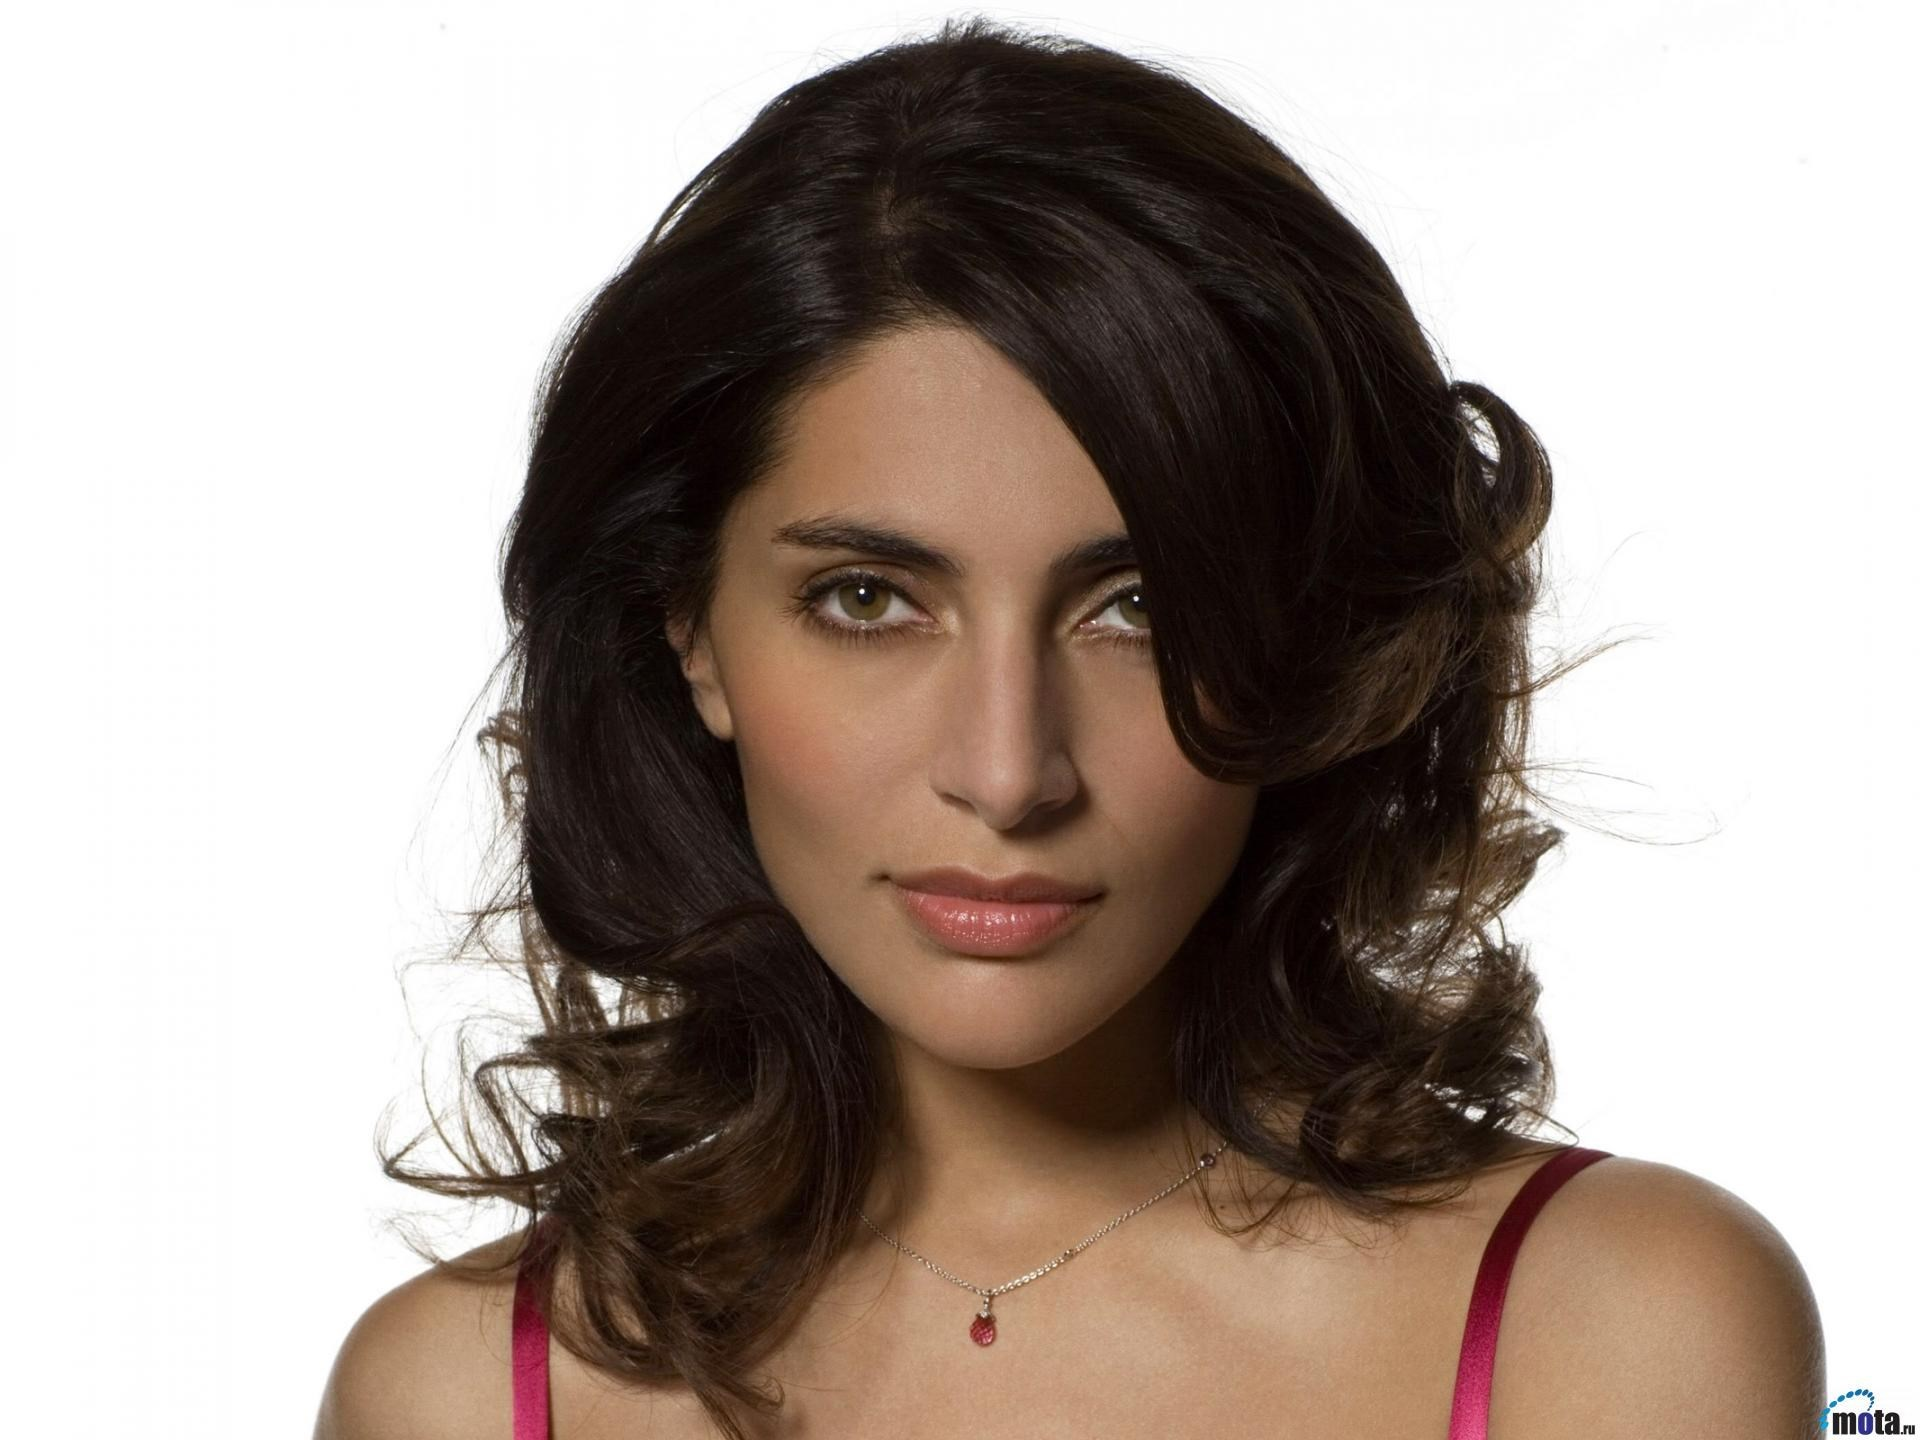 Caterina Murino Meet the the former Bond girl whos being